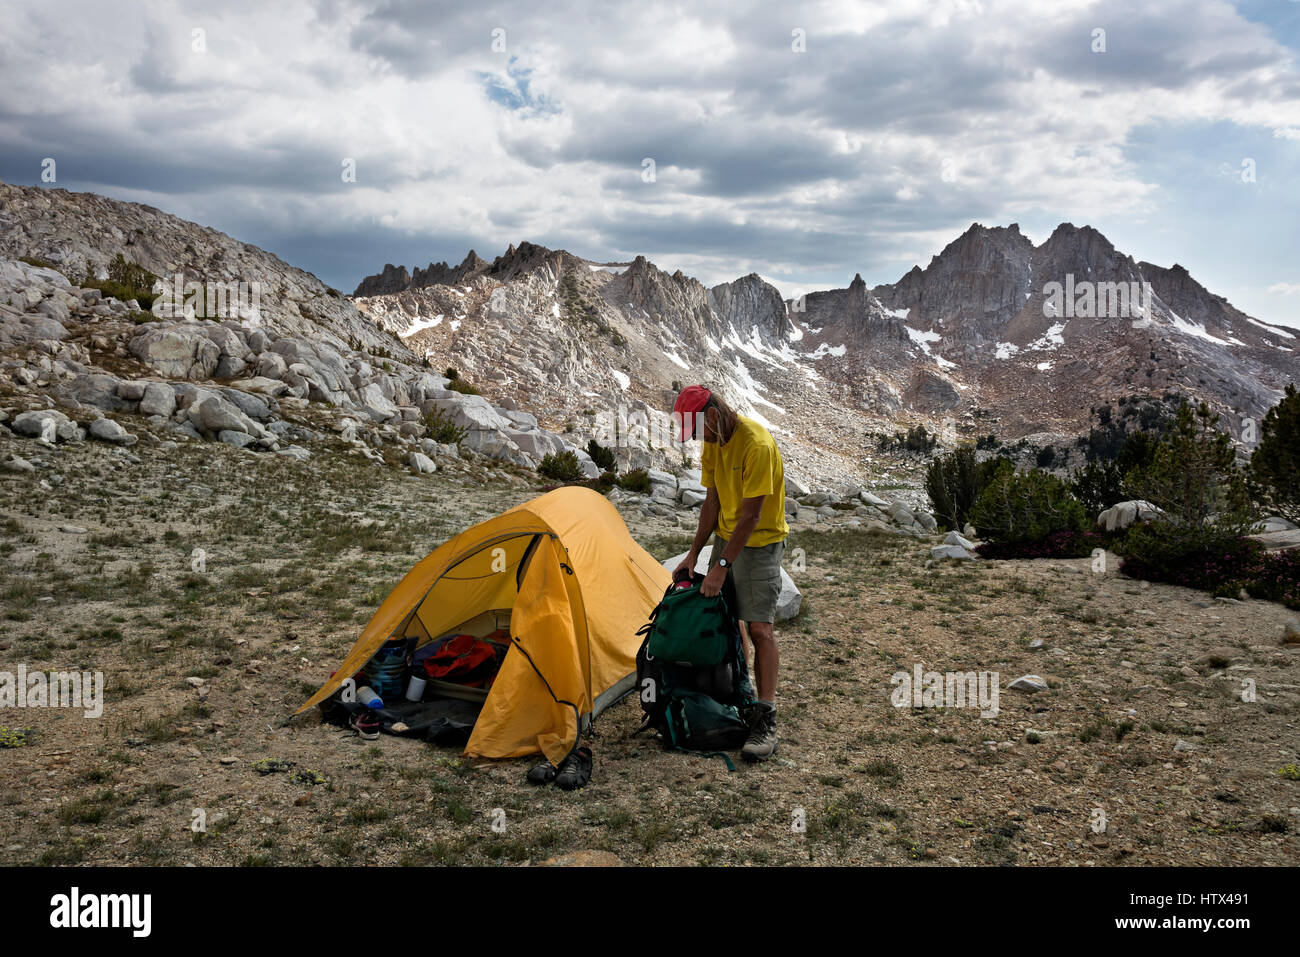 CA03061-00...CALIFORNIA - Campsite below Silver Pass along the JMT/PCT in the John Muir Wilderness area. - Stock Image